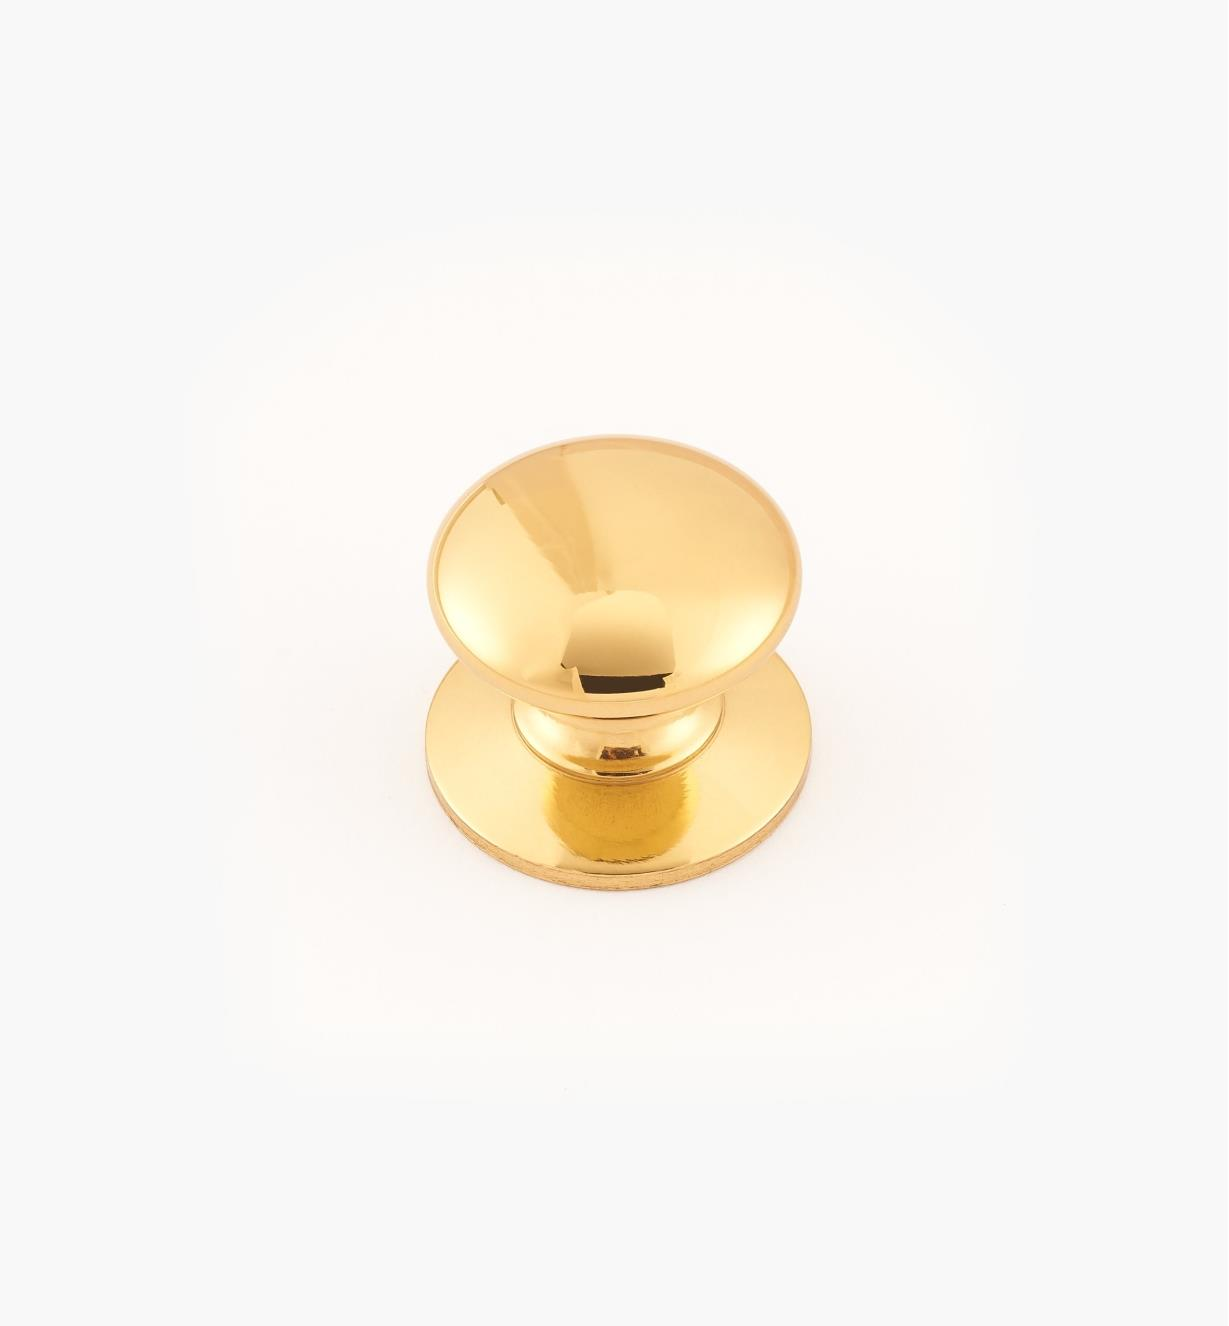 "02W2707 - Polished Brass Suite - 3/4"" x 5/8"" Round Brass Knob"